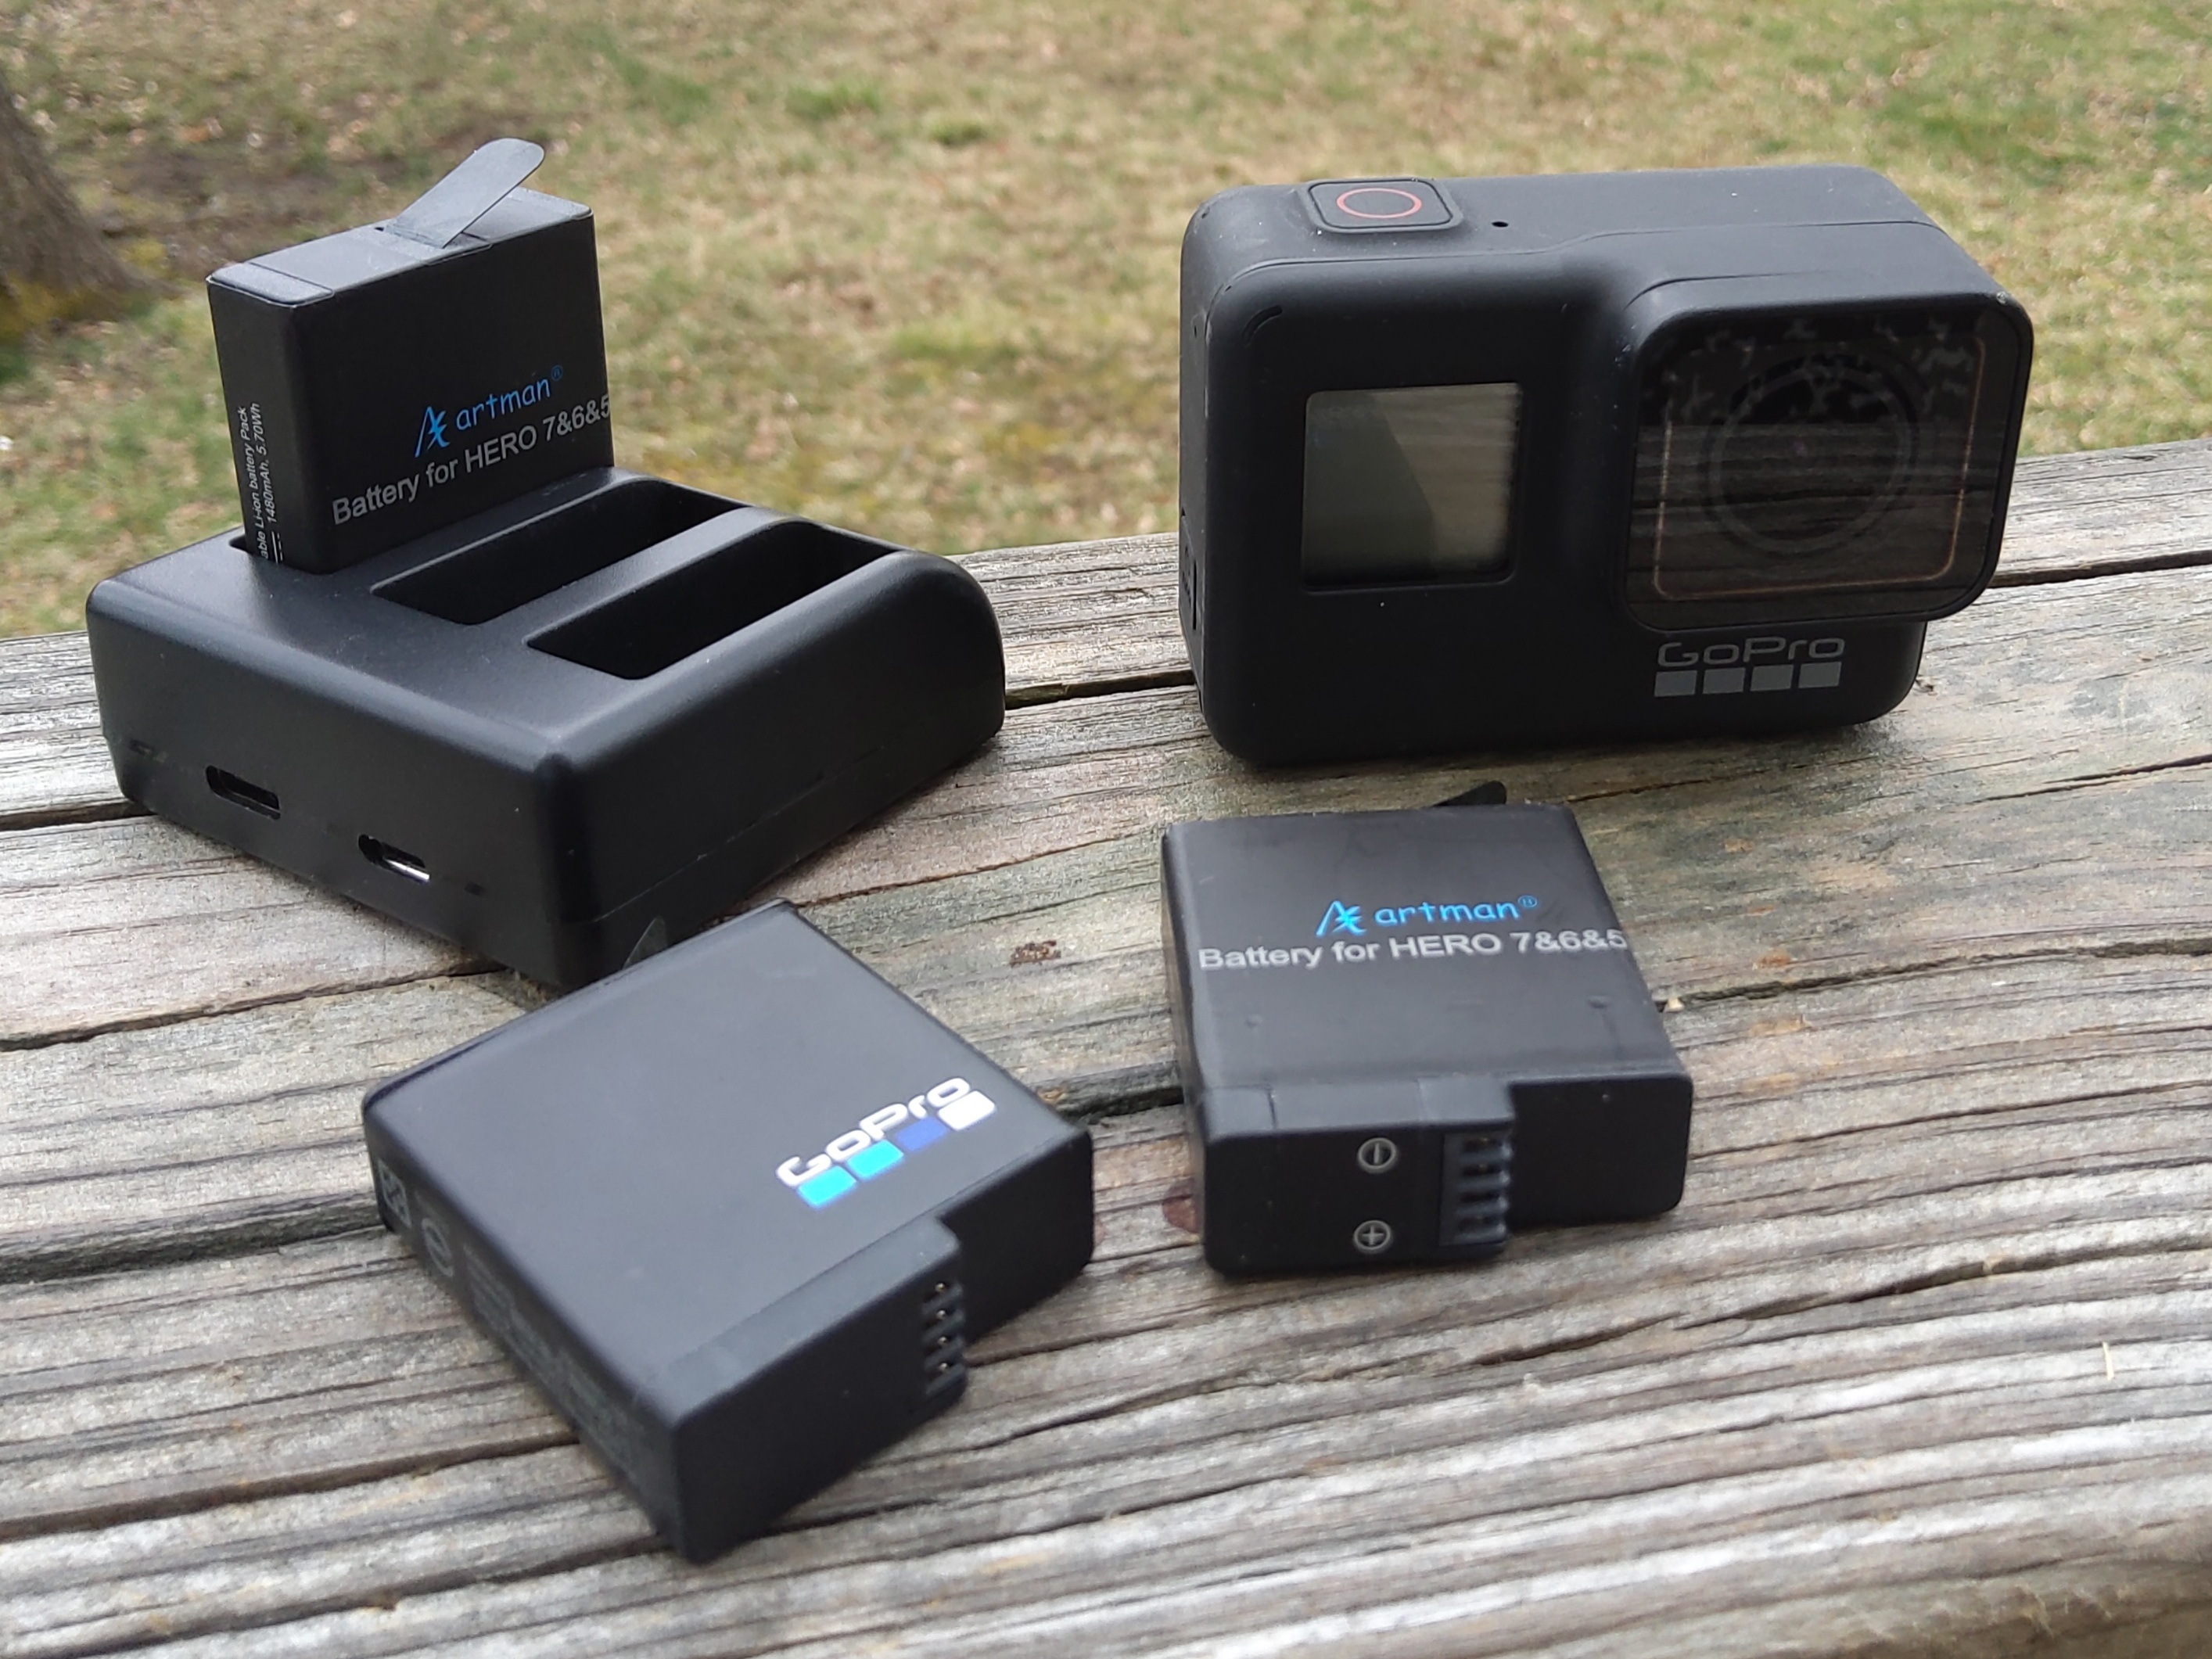 GoPro Hero7 with Artman batteries and charger